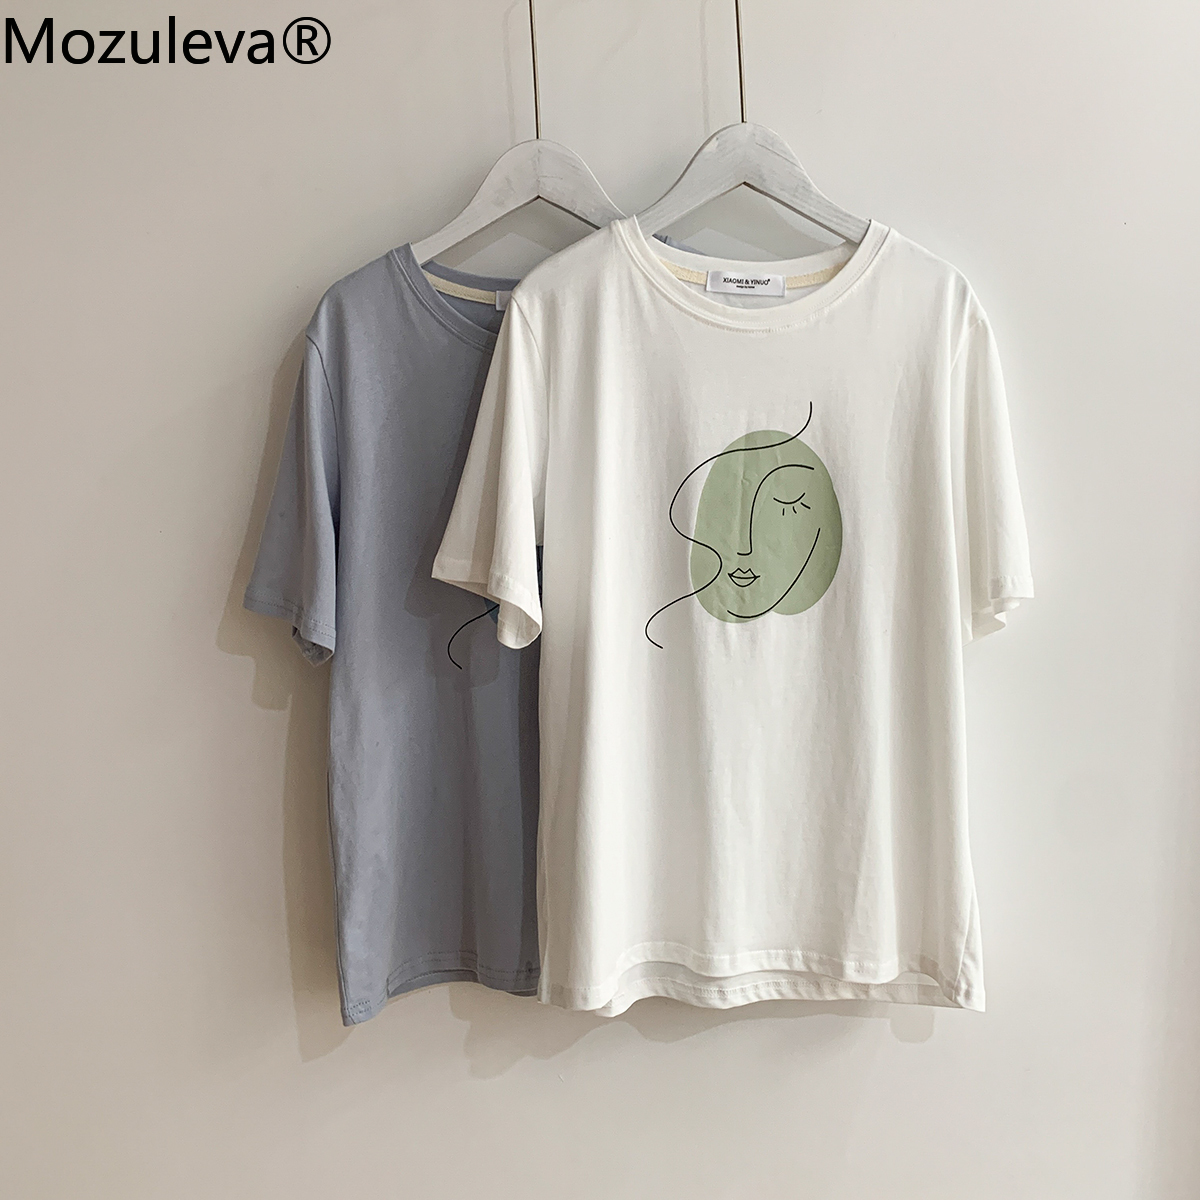 Mozuleva Summer T-shirt 2021 O-neck Abstract Art Printing Tops Short Sleeve Loose Cotton T-shirt Women Chic Girls Harajuku Tees